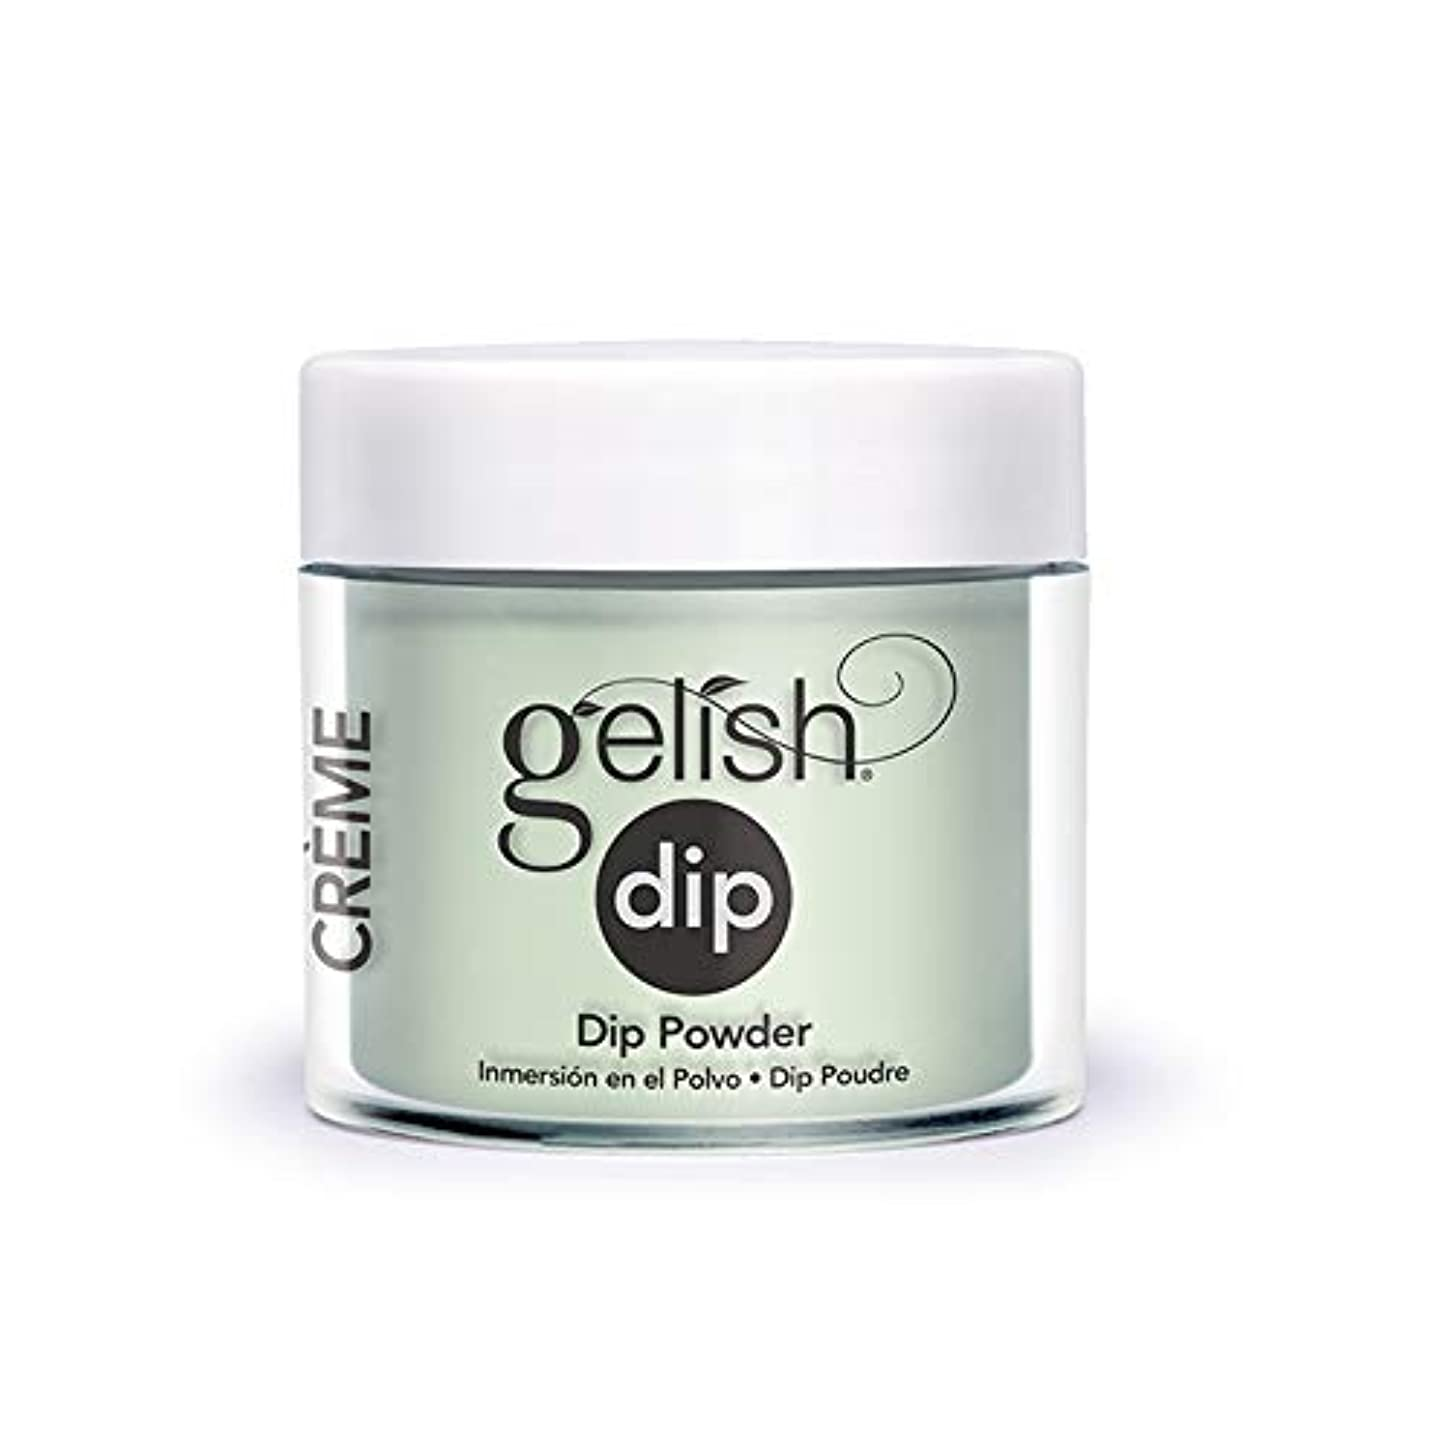 Harmony Gelish - Acrylic Dip Powder - Mint Chocolate Chip - 23g / 0.8oz